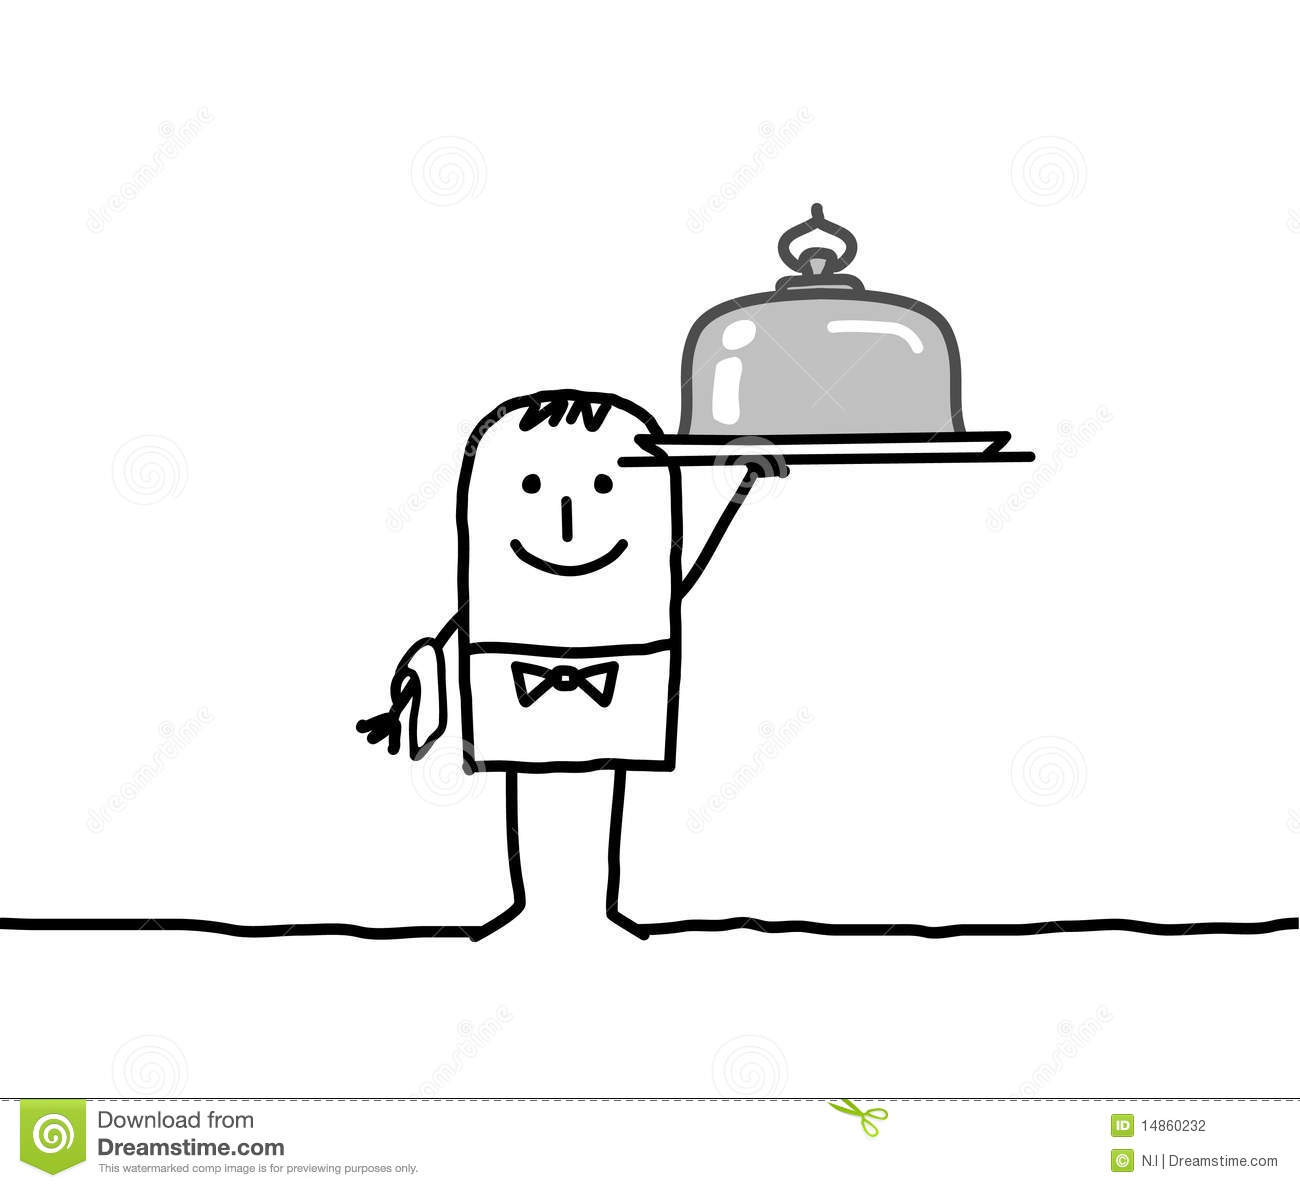 Waiter and silver dish